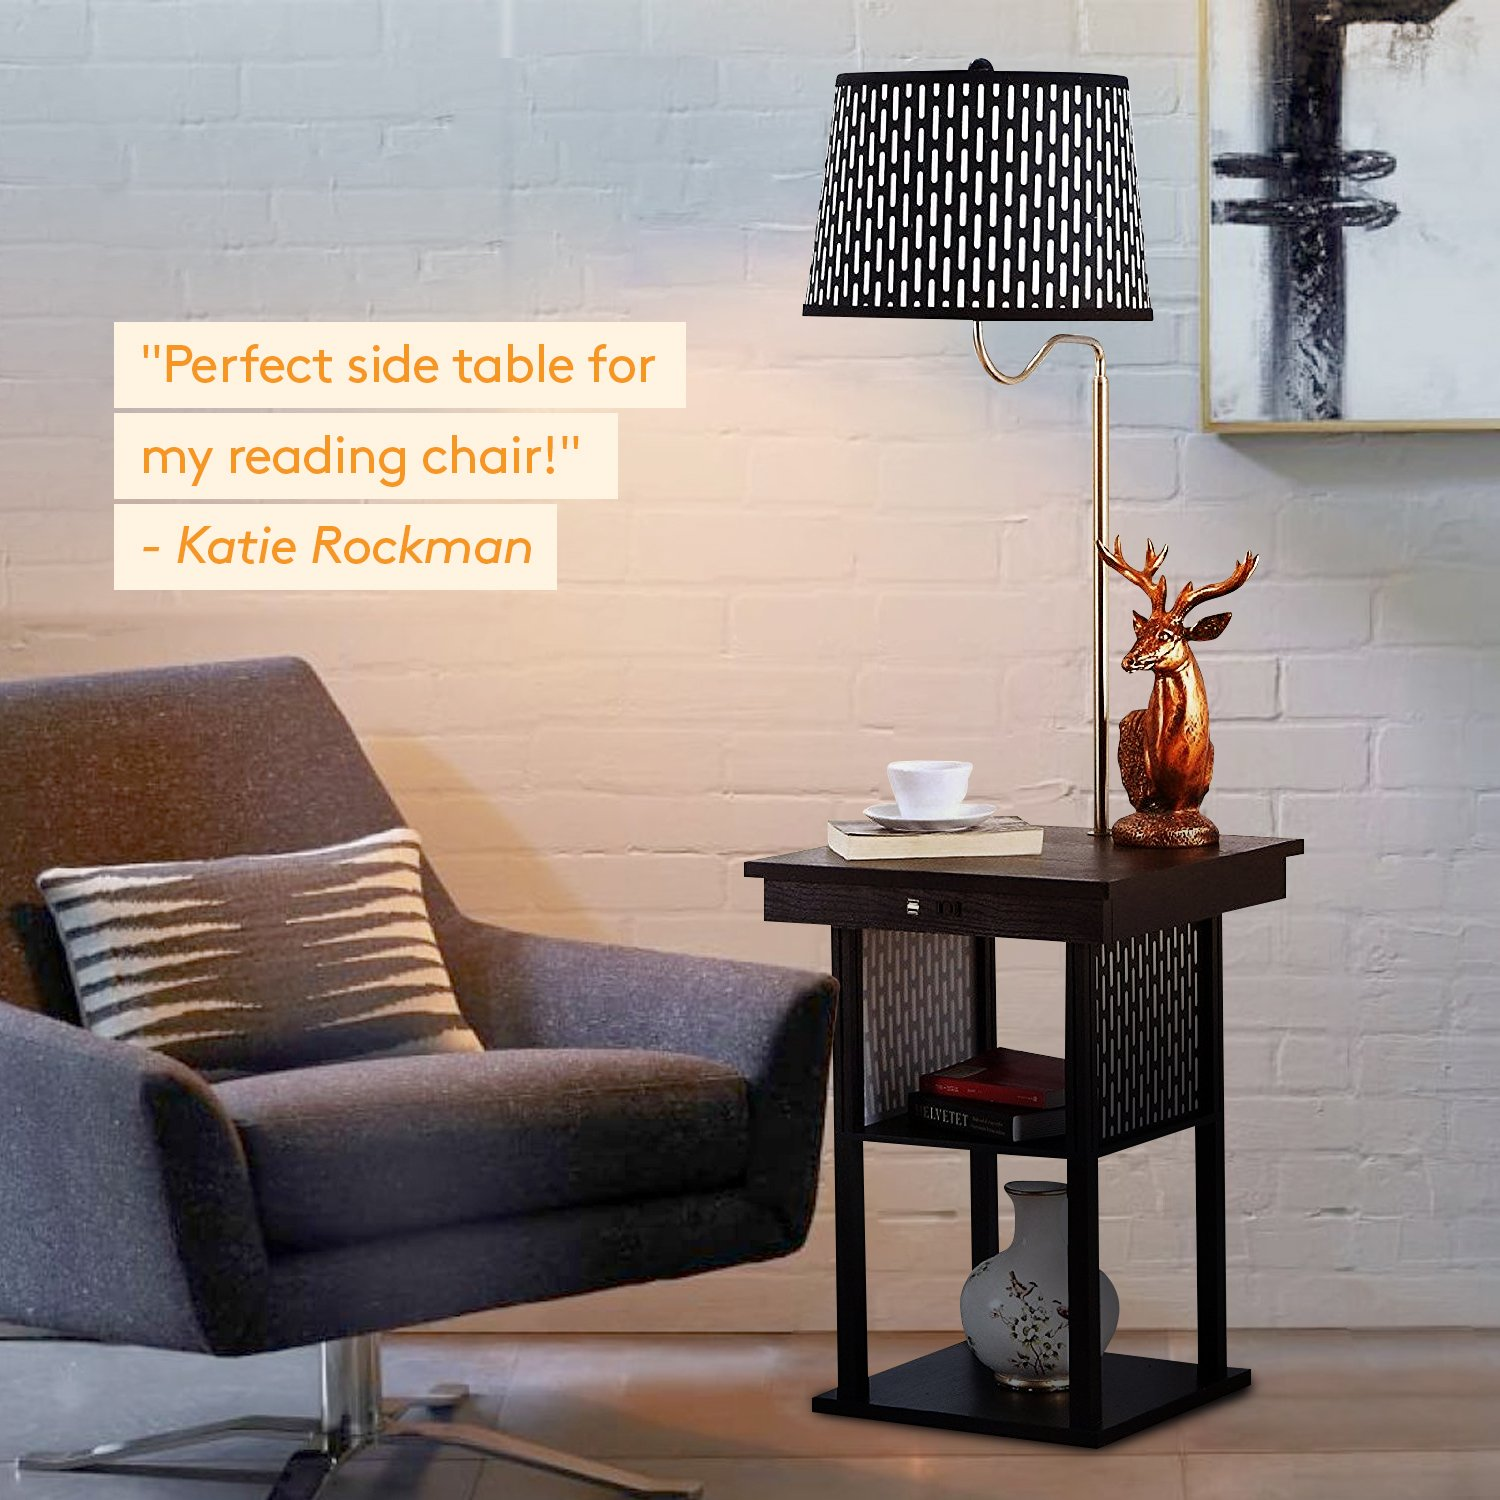 Brightech Madison LED Floor Lamp Swing Arm Lamp W/Shade U0026 Built In End Table  U0026 Shelf, Includes 2 USB Ports U0026 1 US Electric Outlet U2013 Bedside Table Lamp  For ...